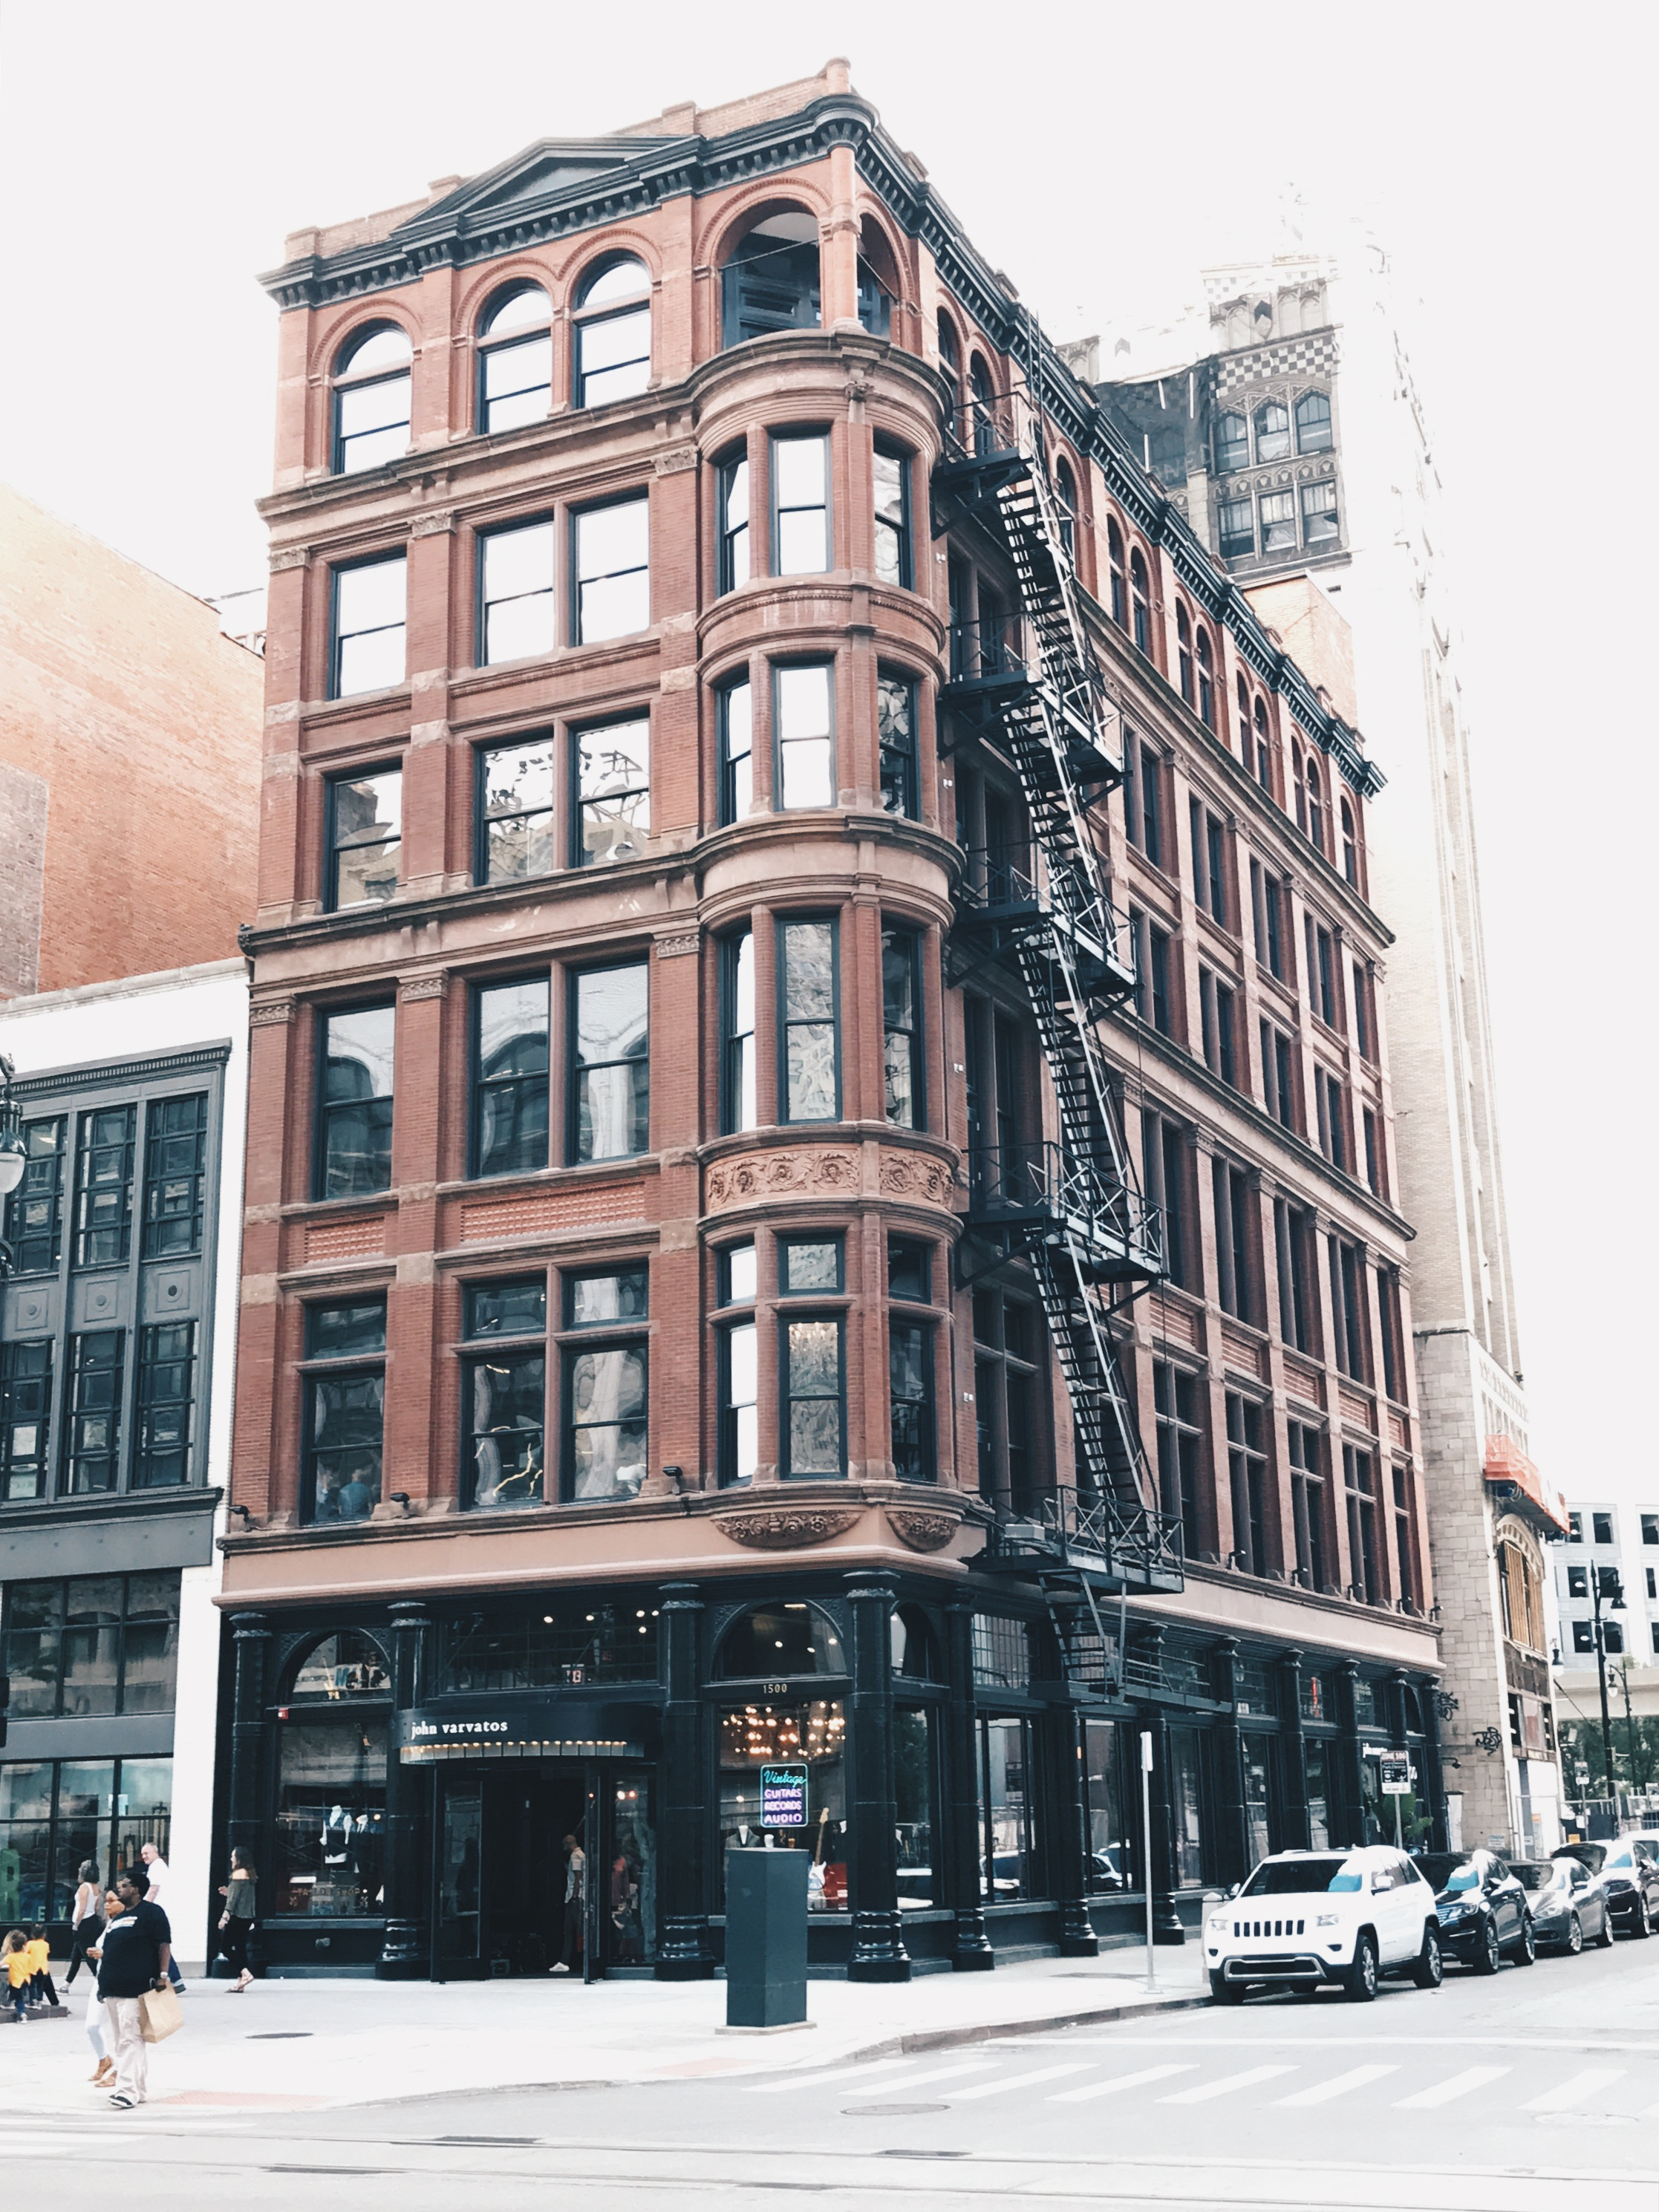 The building that houses John Varvatos and Wright & Co.